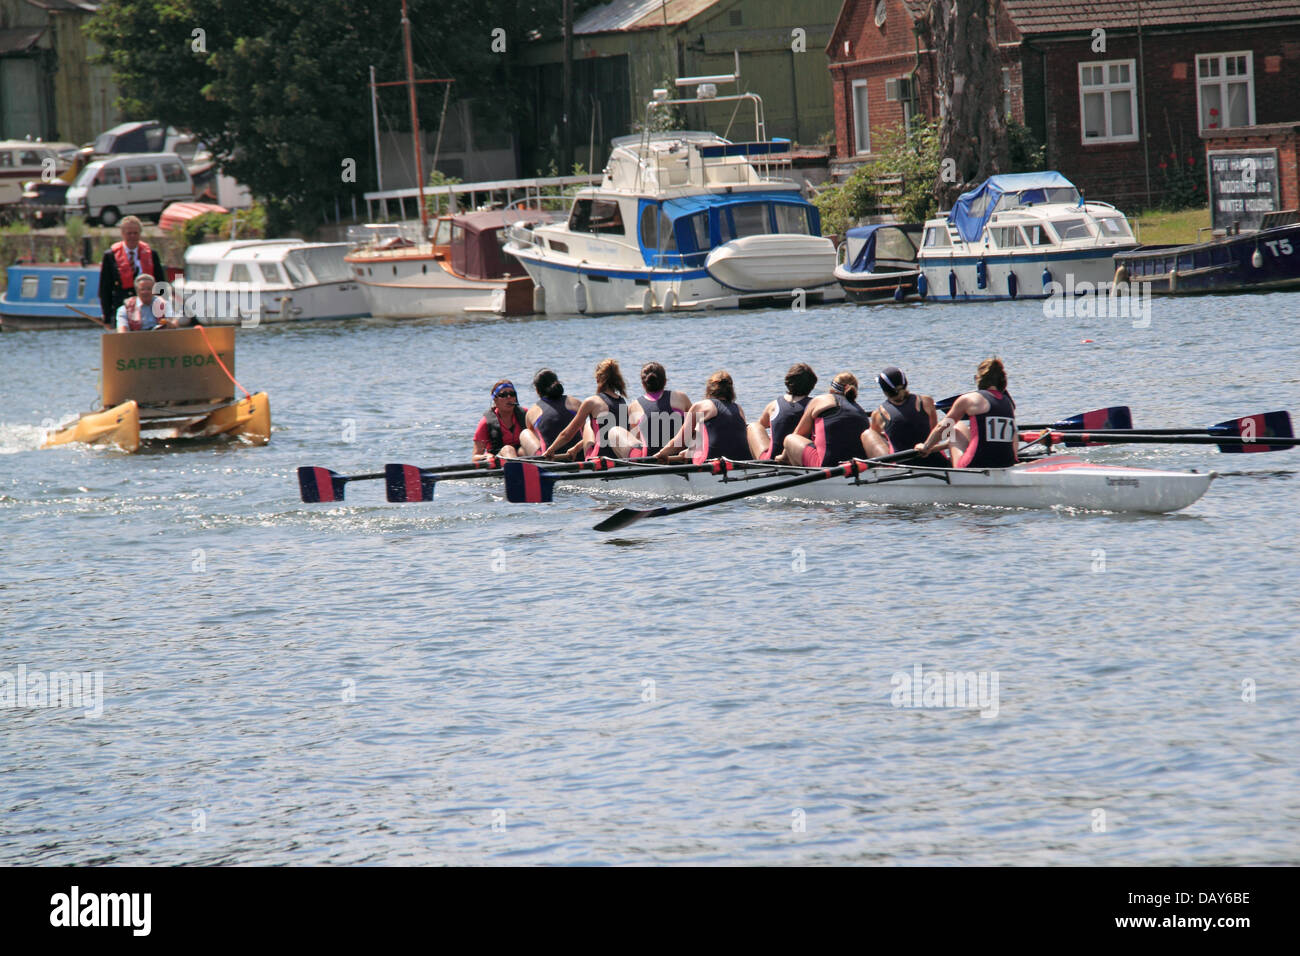 Twickenham Rowing Club women's coxed eight at Molesey Amateur Regatta, 20th July 2013, River Thames, Hurst Park - Stock Image